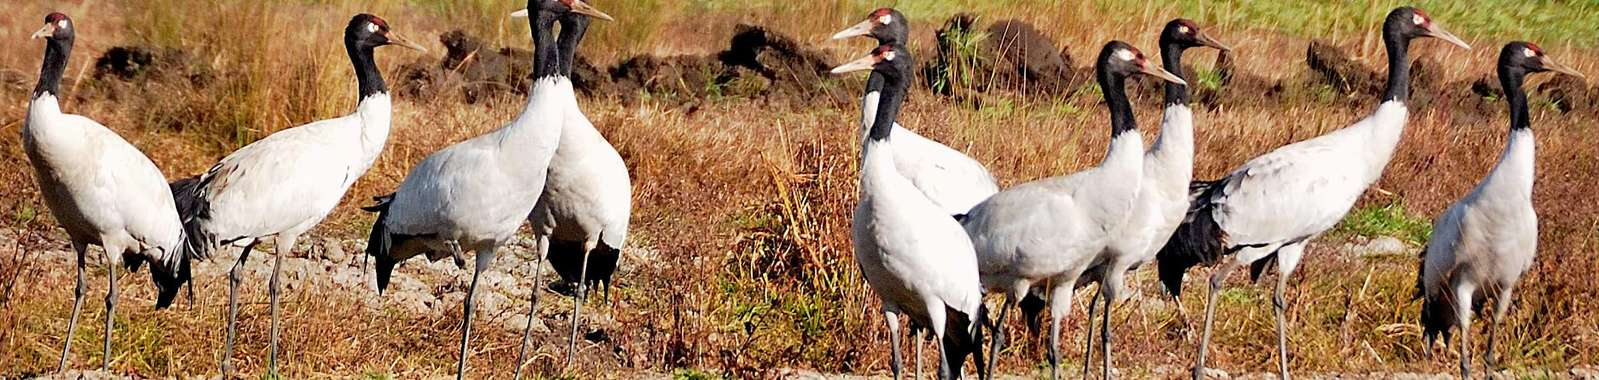 See Bhutan's black-necked cranes on a private tour to Bhutan